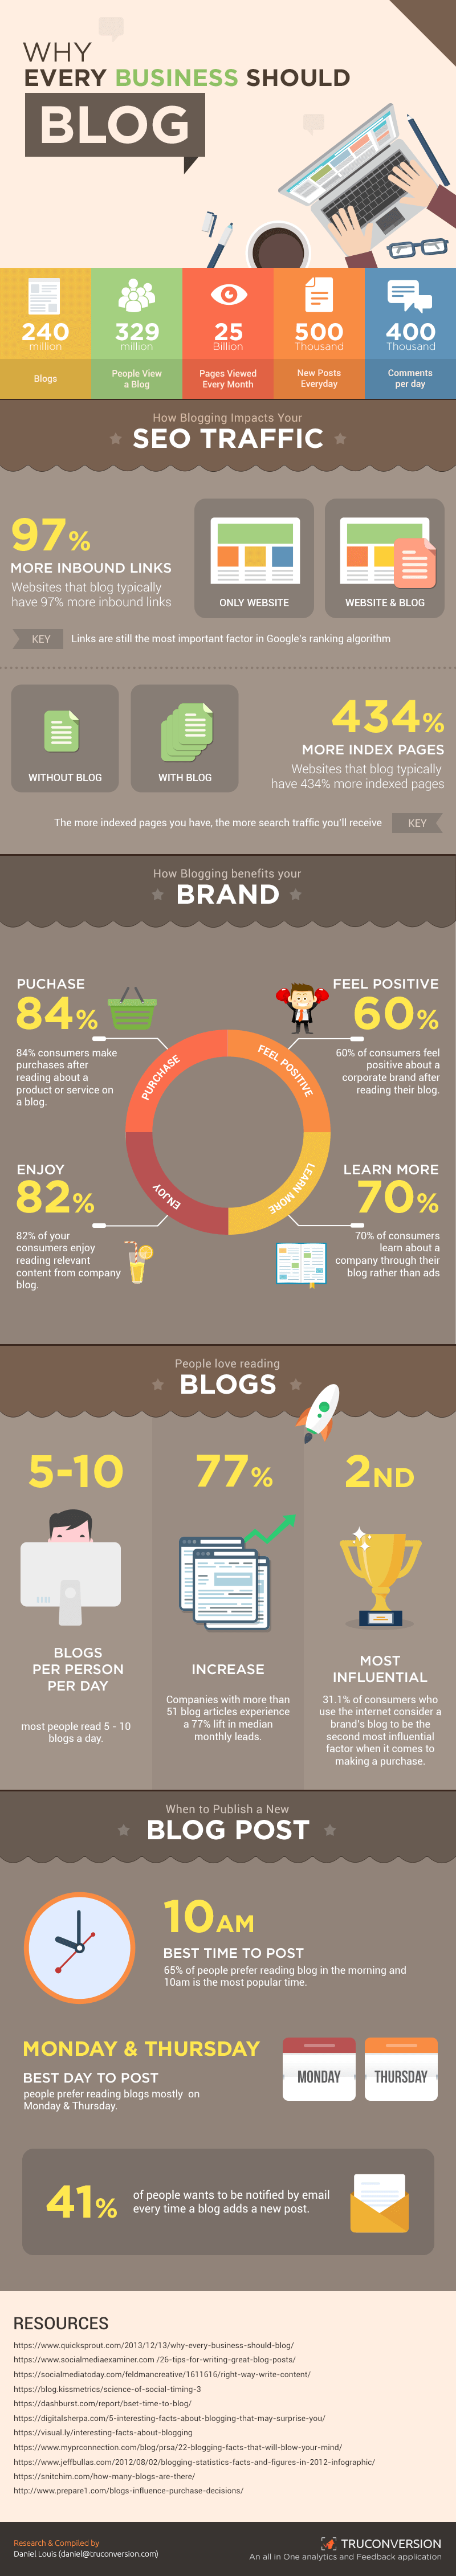 blogging for better seo results